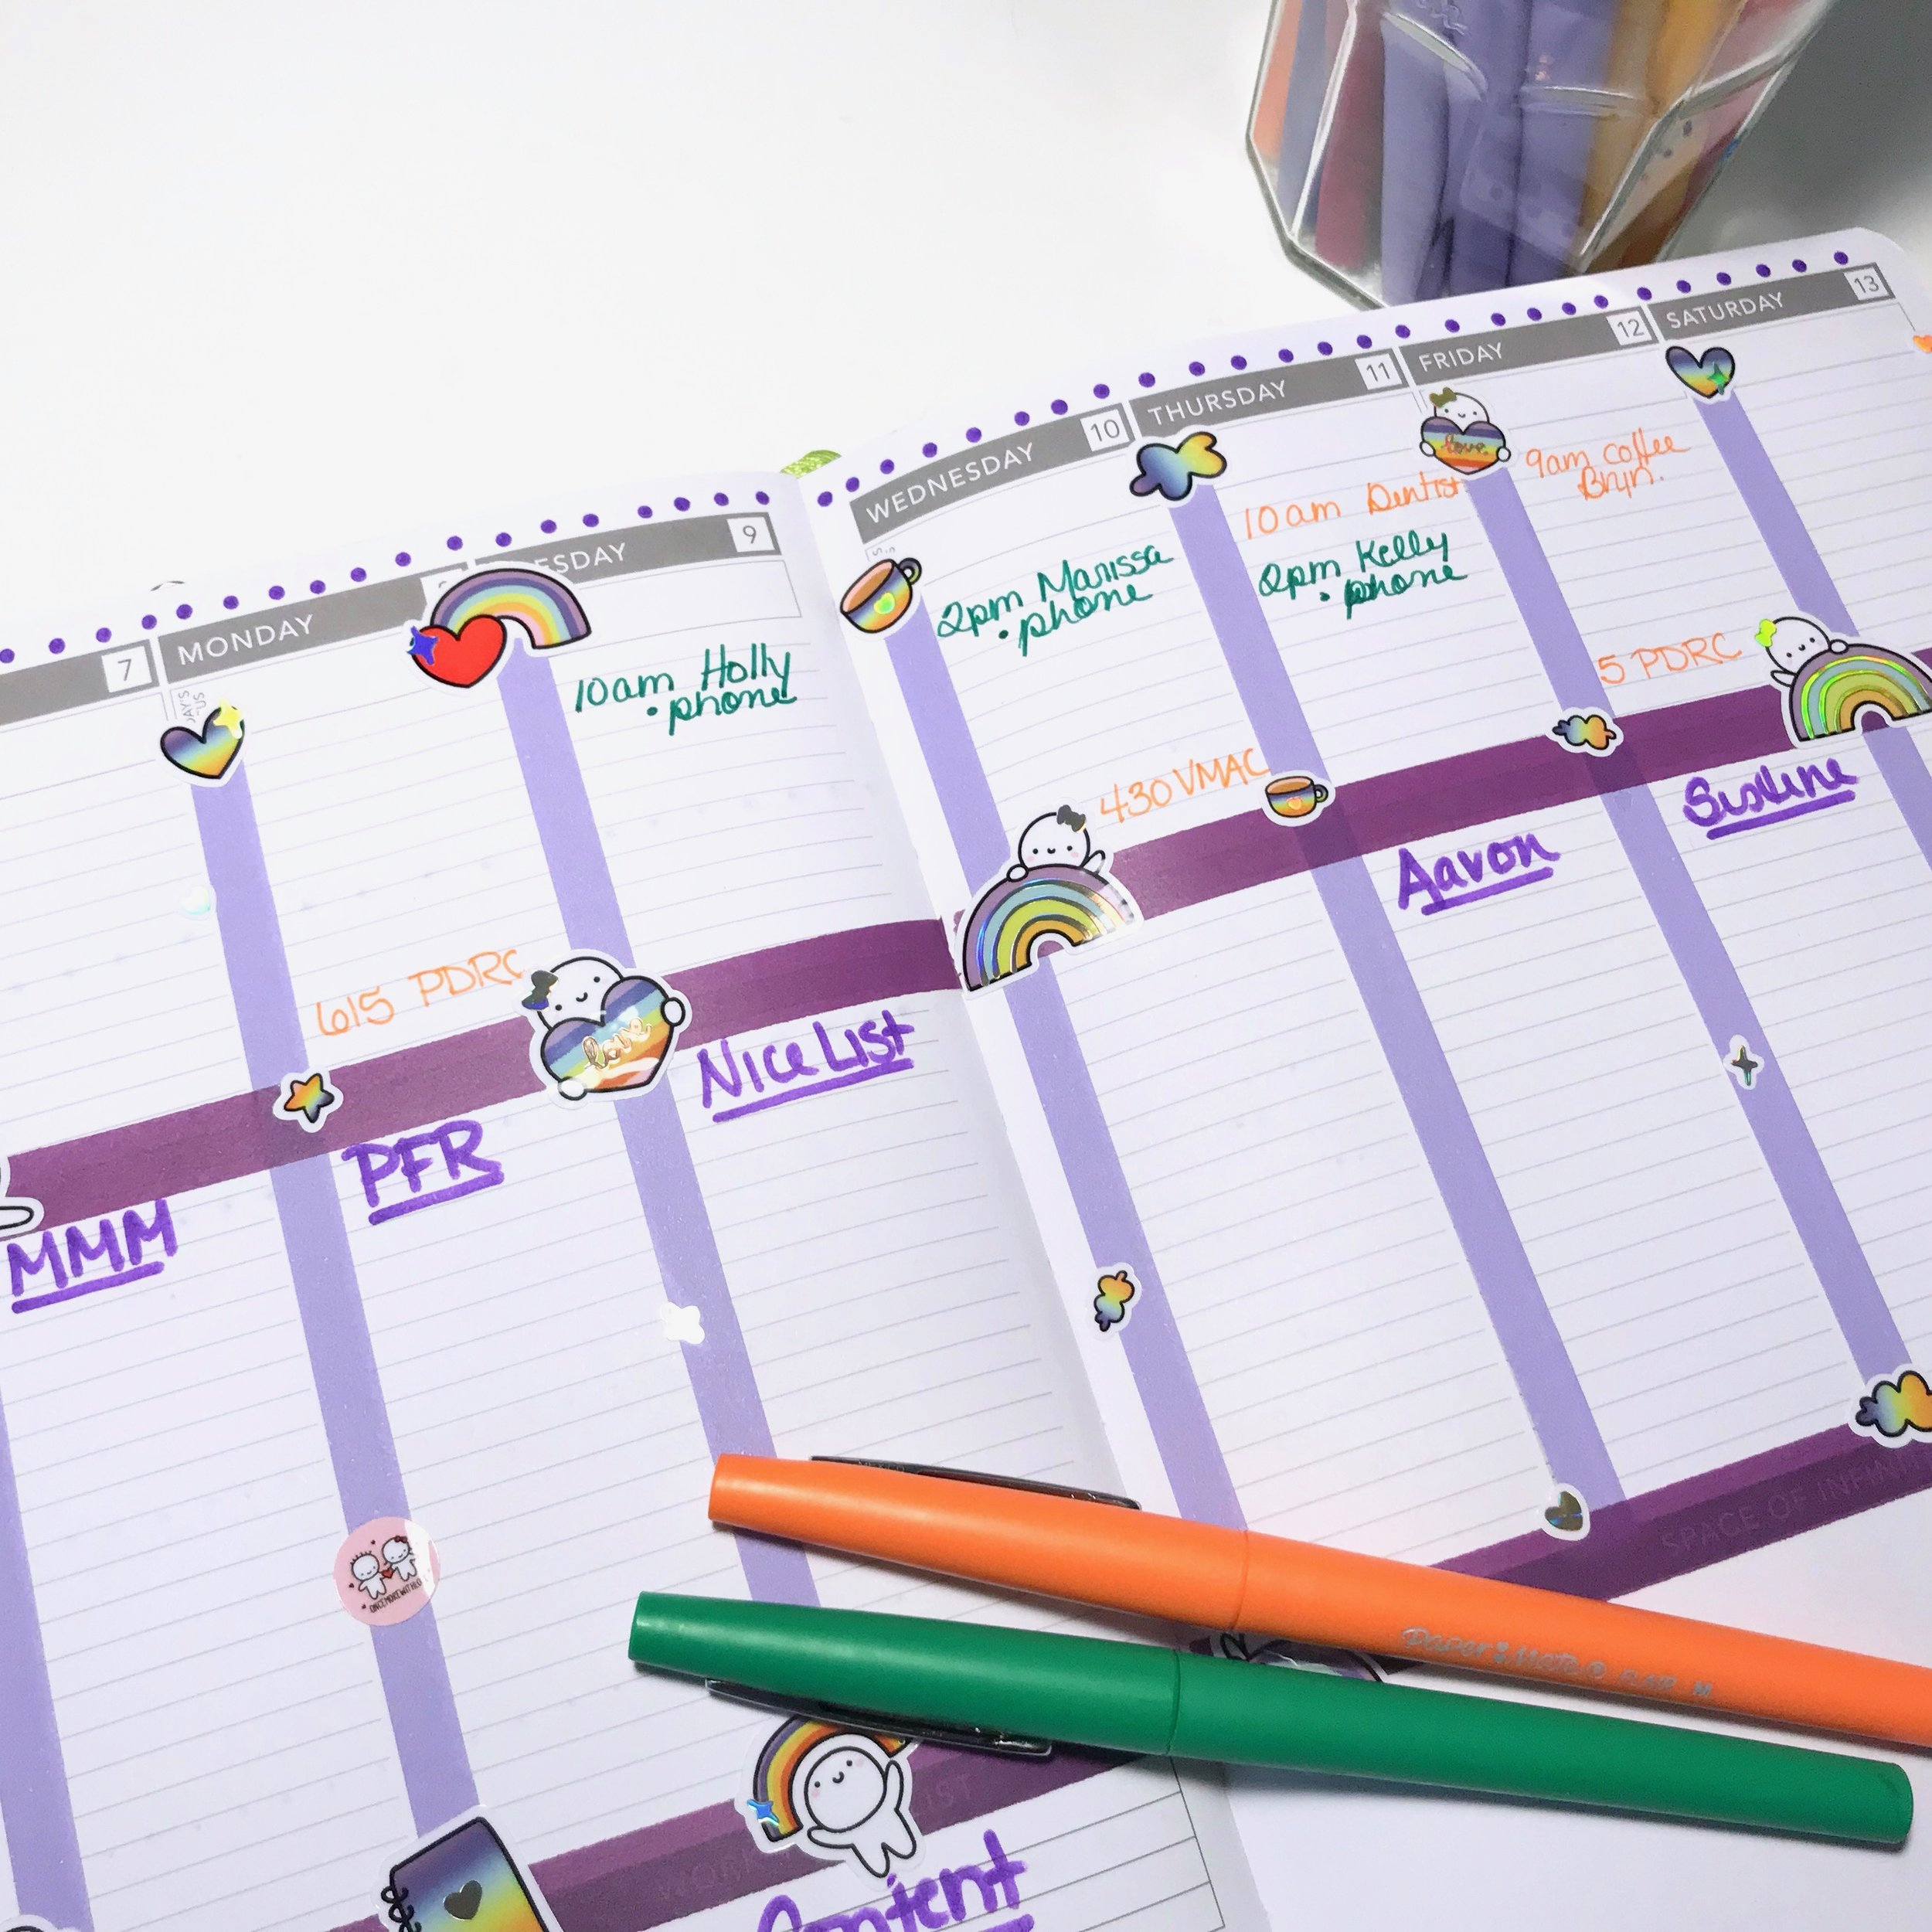 Color coded events and appointments are added to the calendar section of my weekly spread.